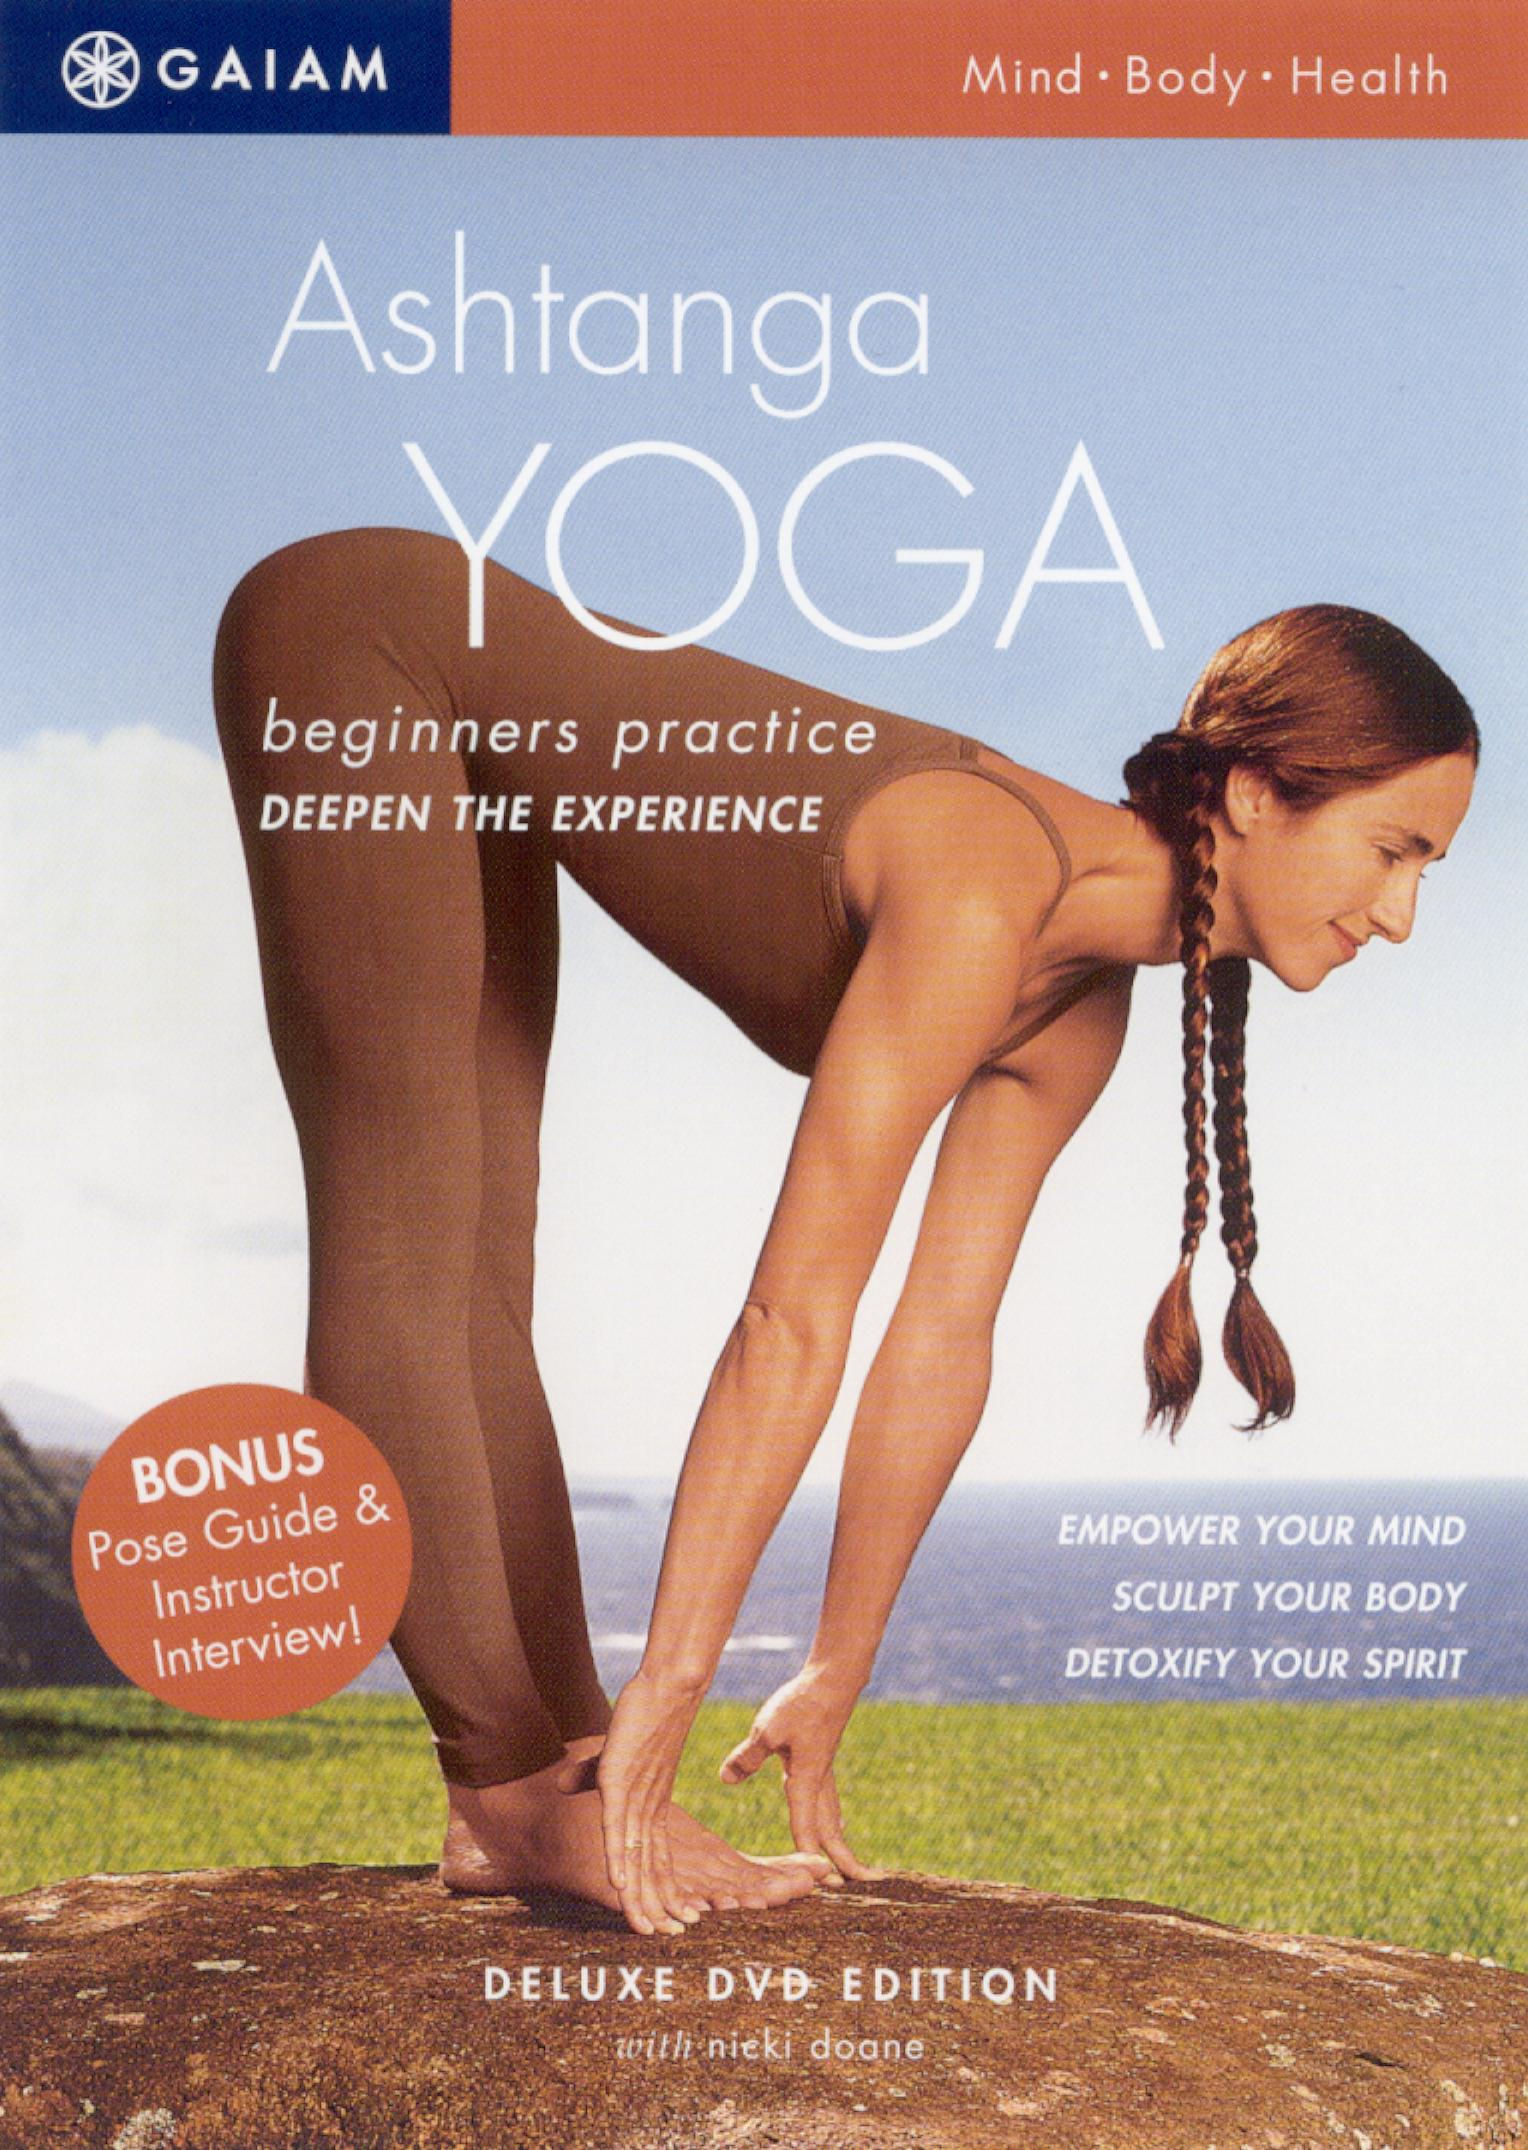 Ashtanga Yoga: Beginners Practice